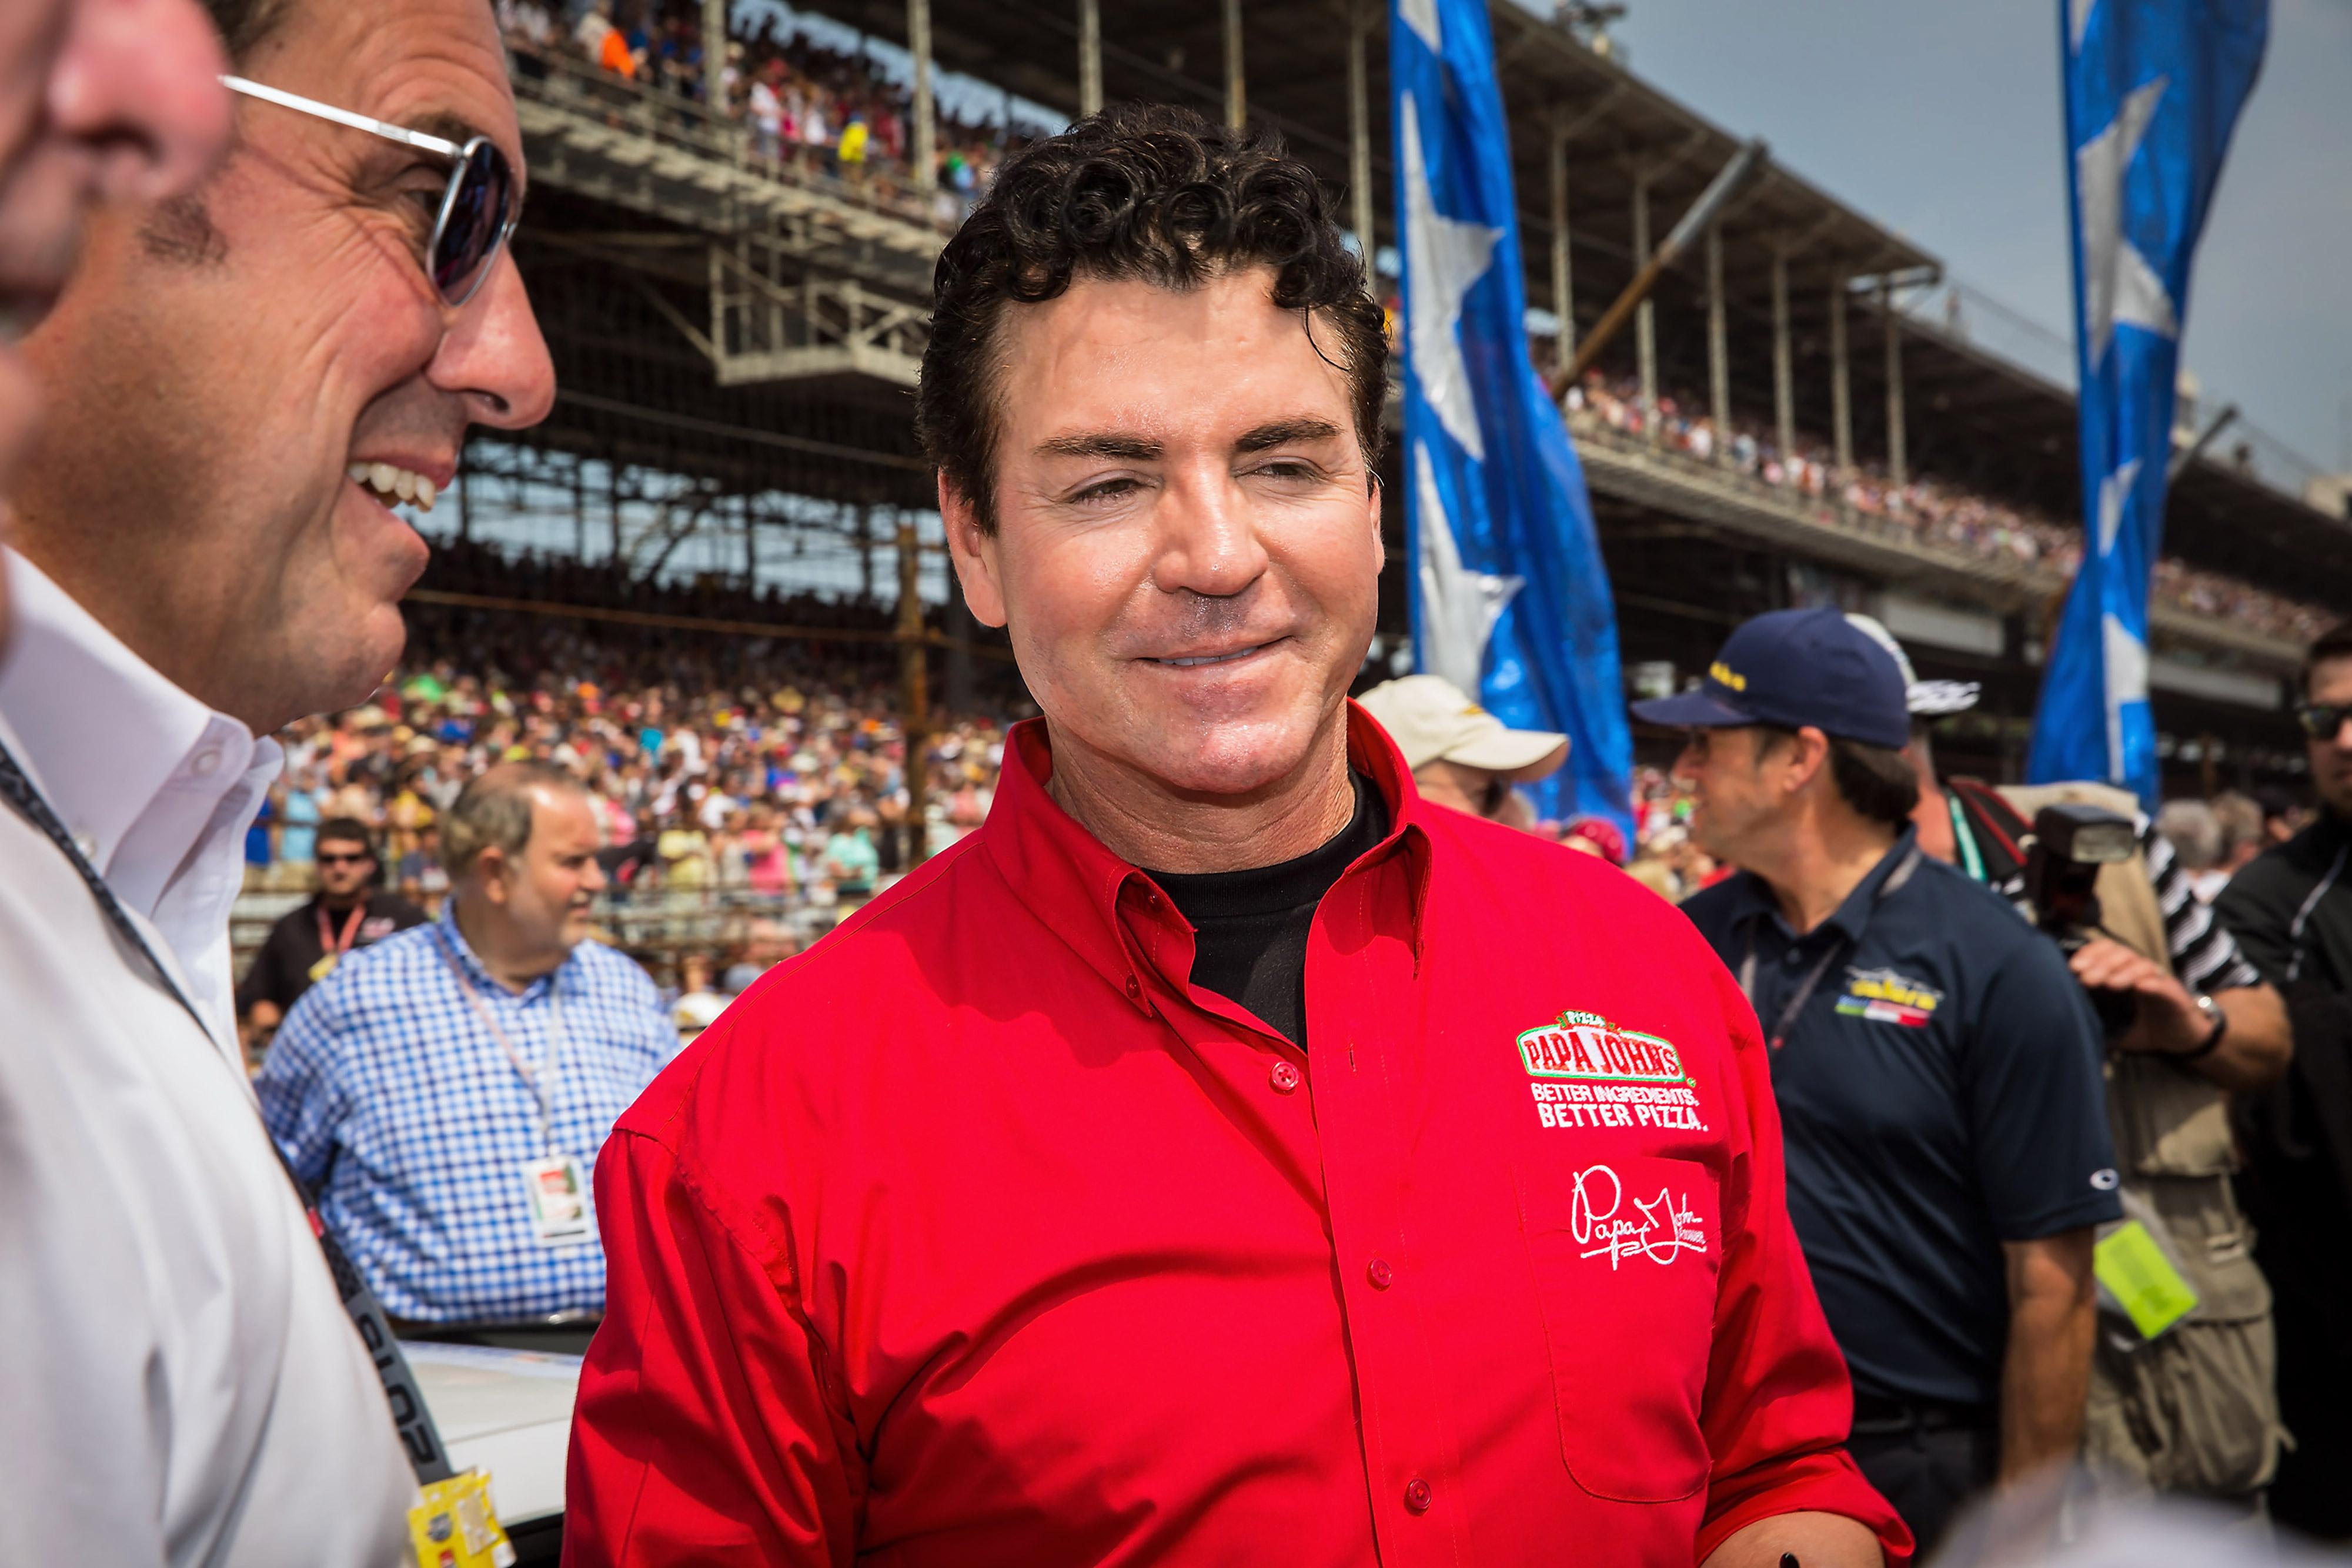 forbes papa johns founder used n word during call cnn video